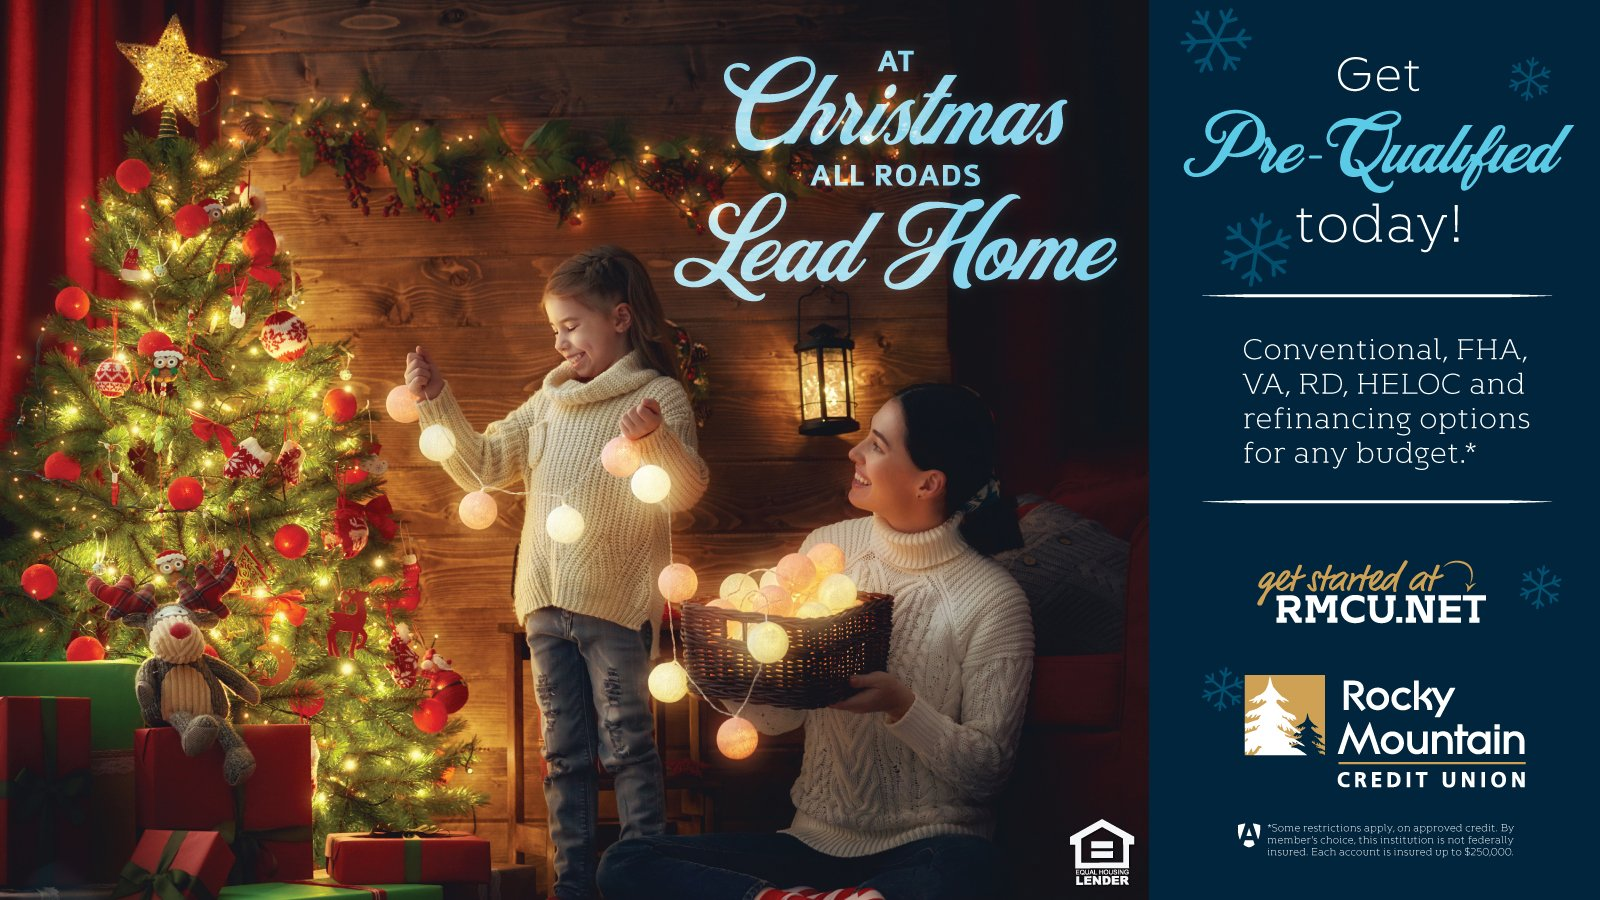 Will you be home for Christmas? Your Future Home Starts Here with RMCU